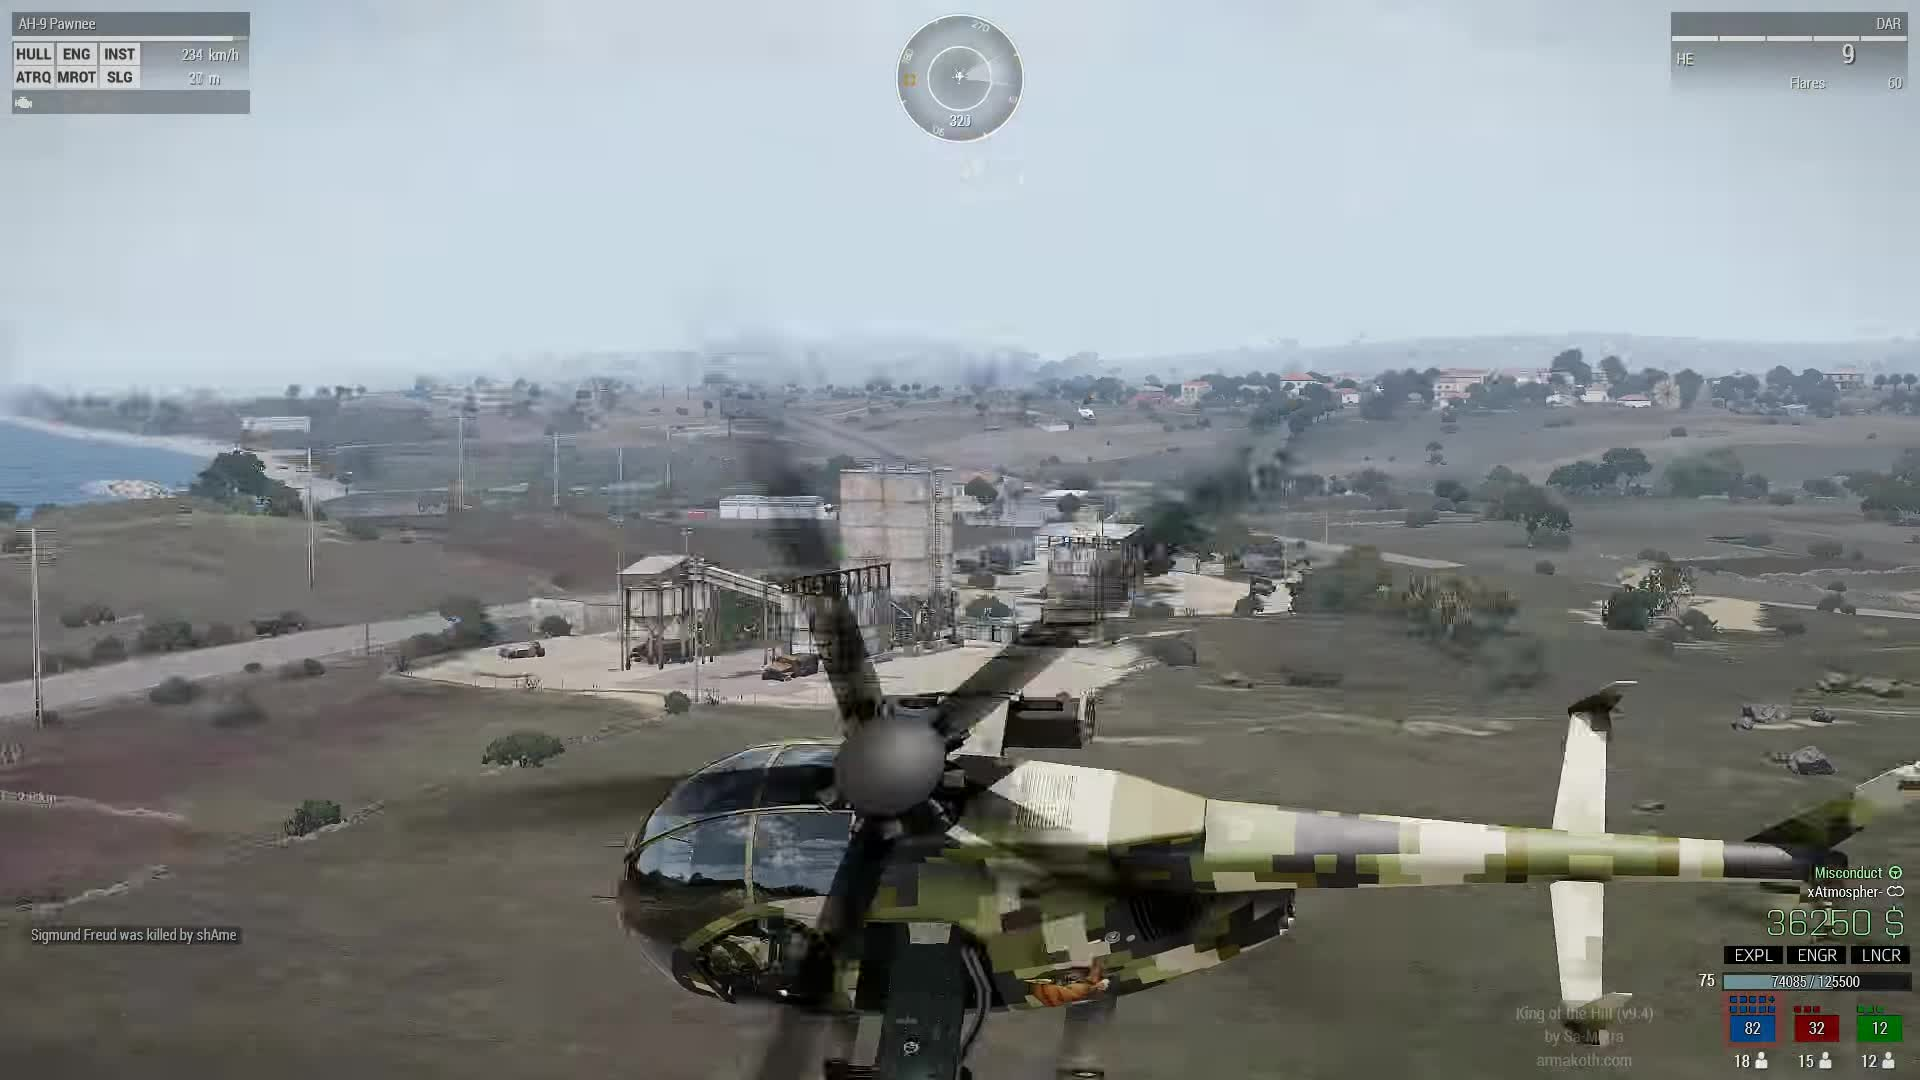 Arma, Arma 3, Gaming, KOTH, King of the Hill, Misconduct, Pilot, amazing pilot, awesome pilot, best pilot, Amazing autorotation GIFs